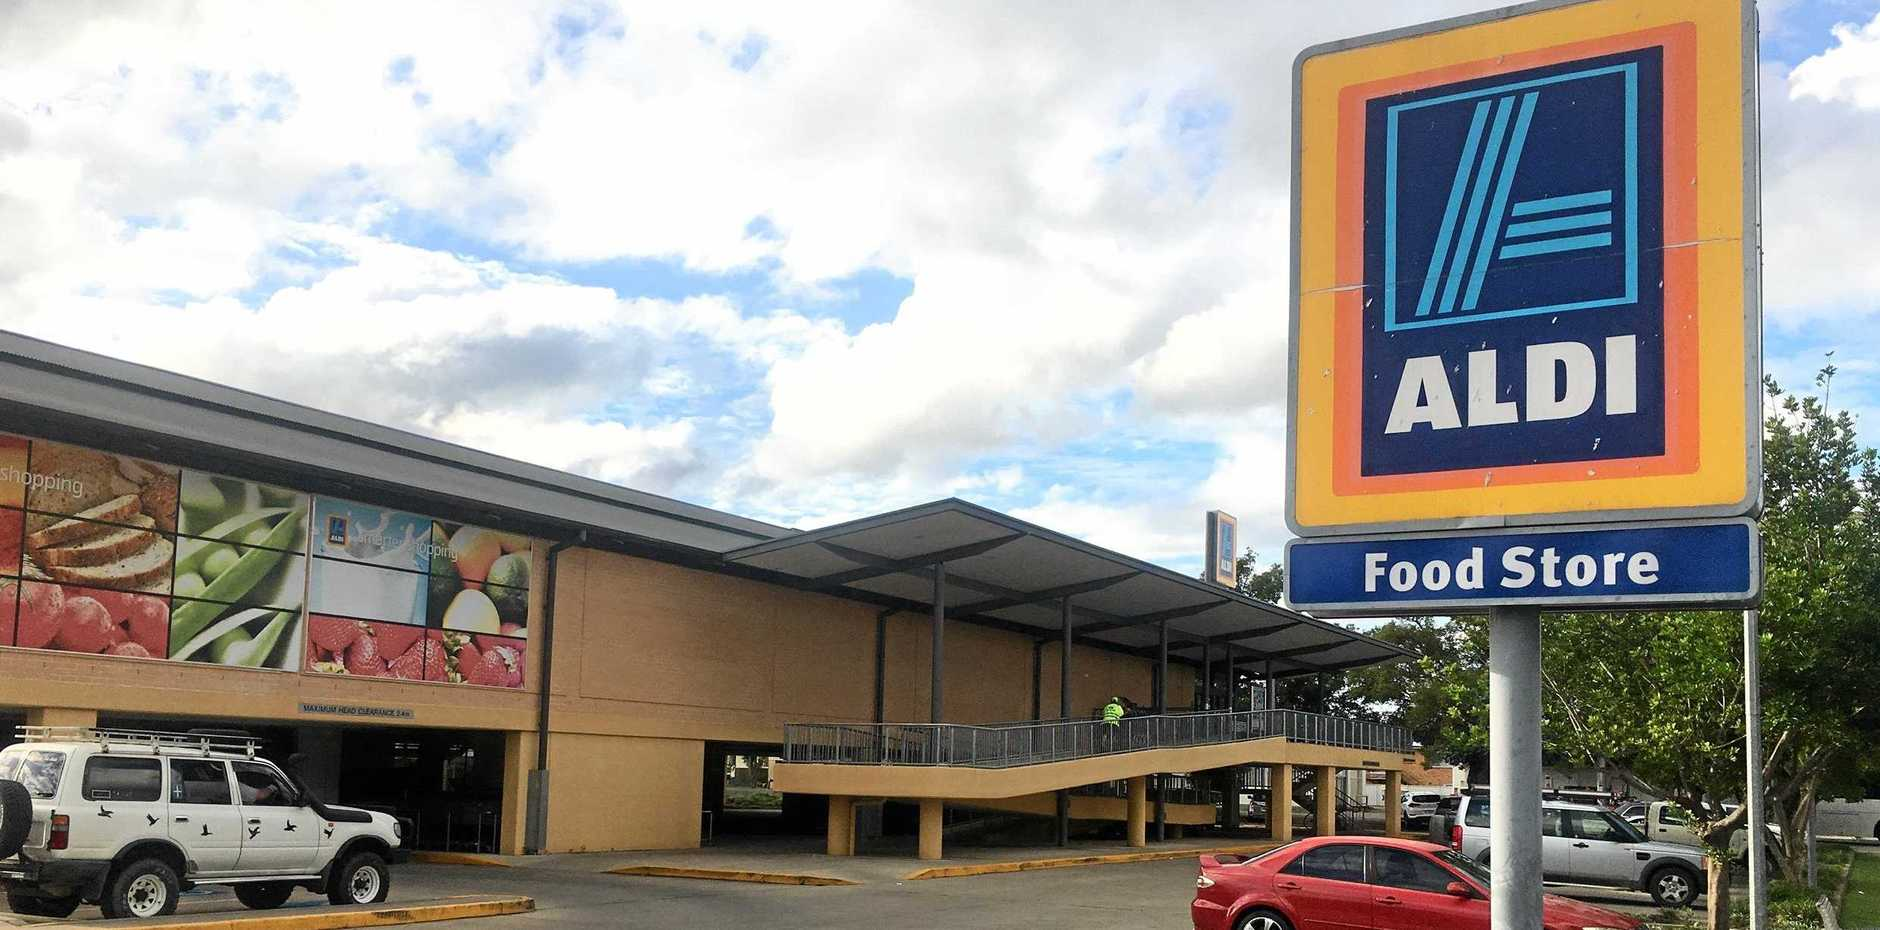 There are no immediate plans for an Aldi in Mackay.